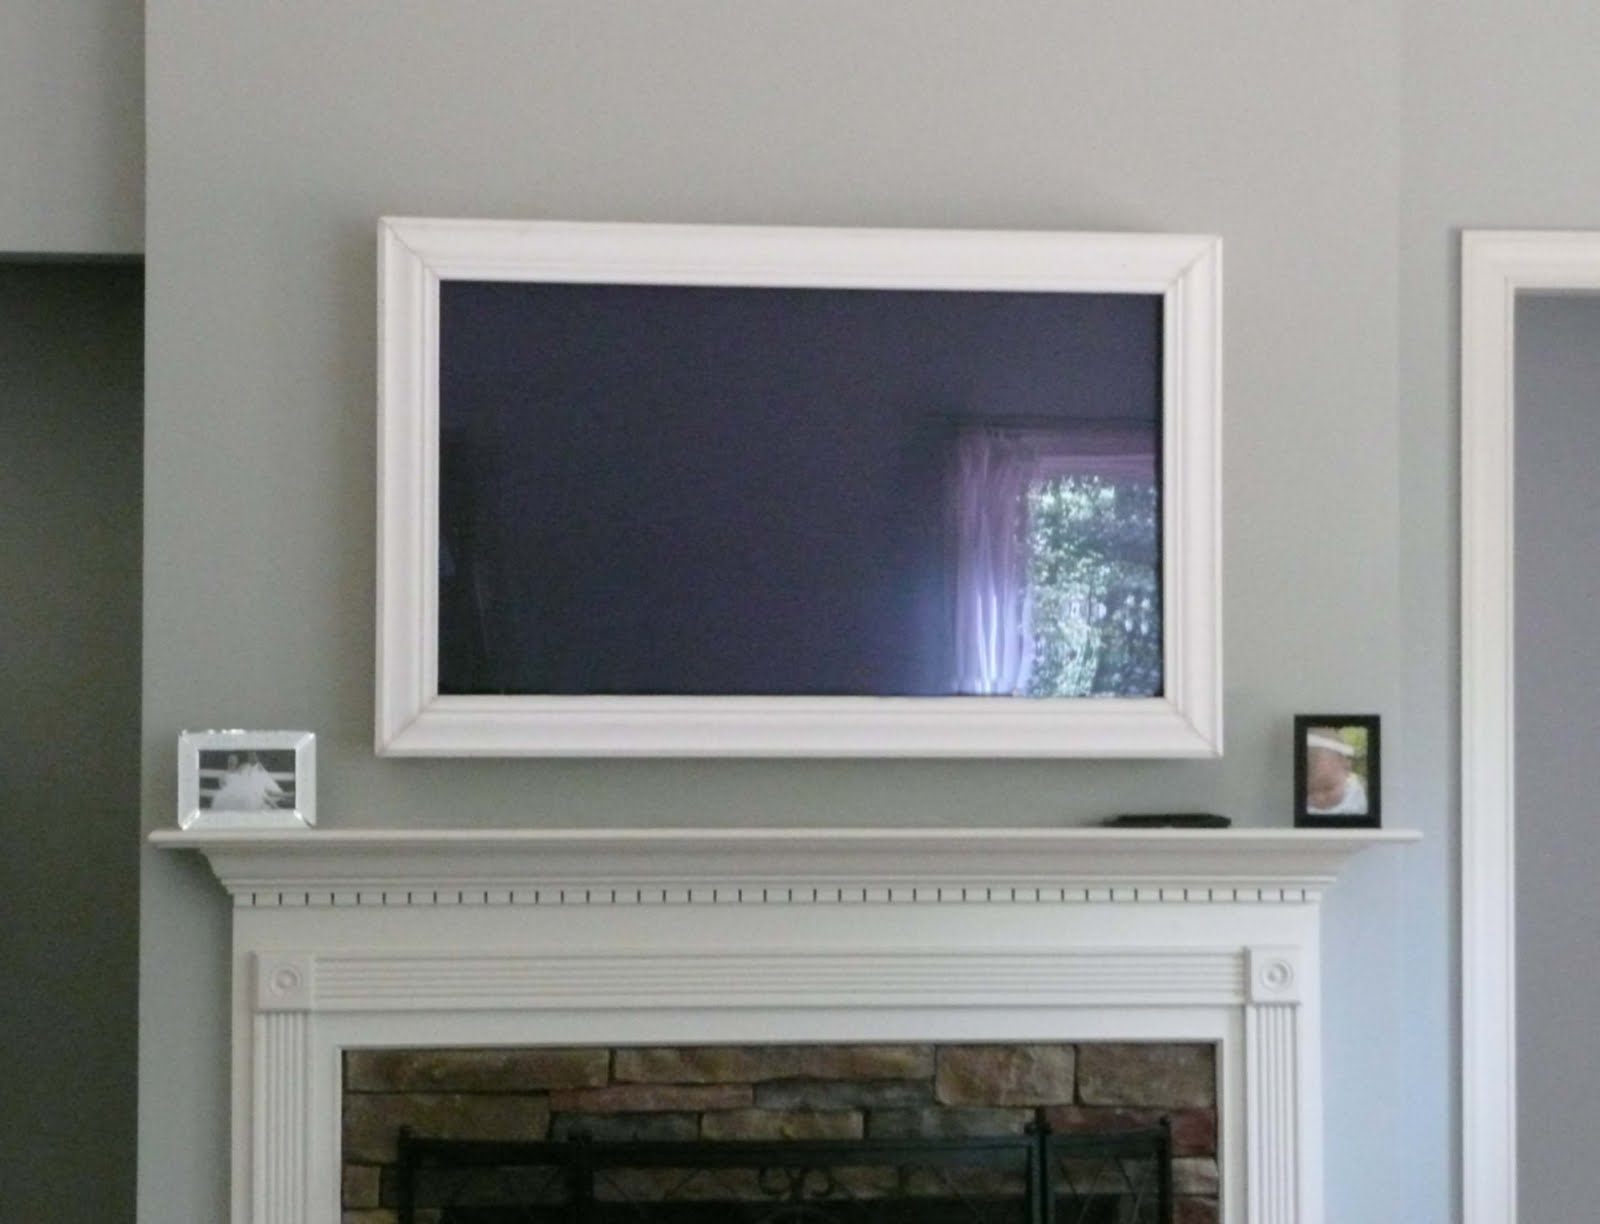 16 Tv Picture Frame Wall Mount Ideas - Lentine Marine | 26388